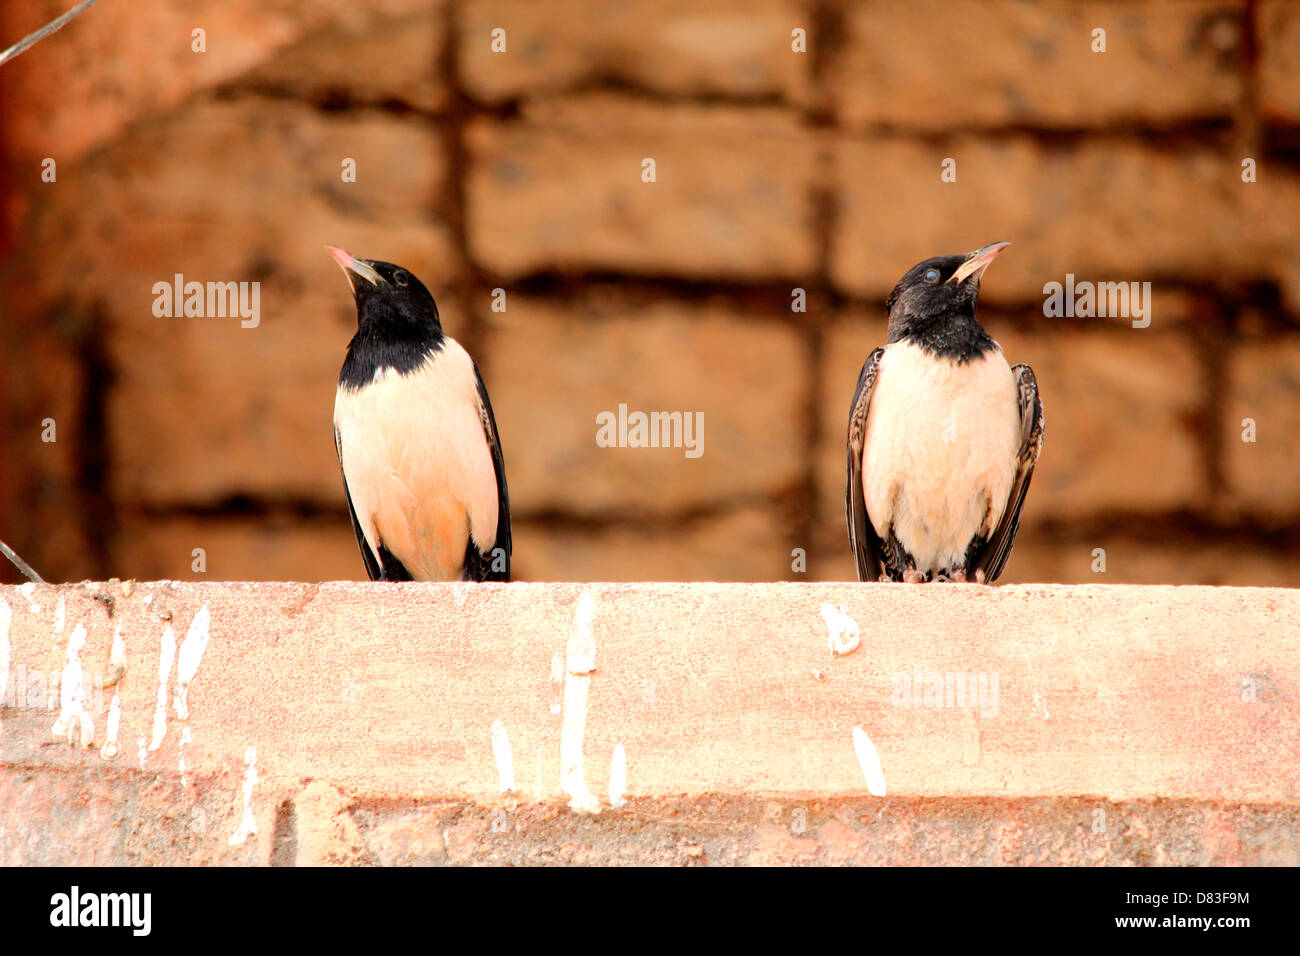 Two birds  looking in two different directions- a creative picture to show difference of opinion or lack of agreement - Stock Image